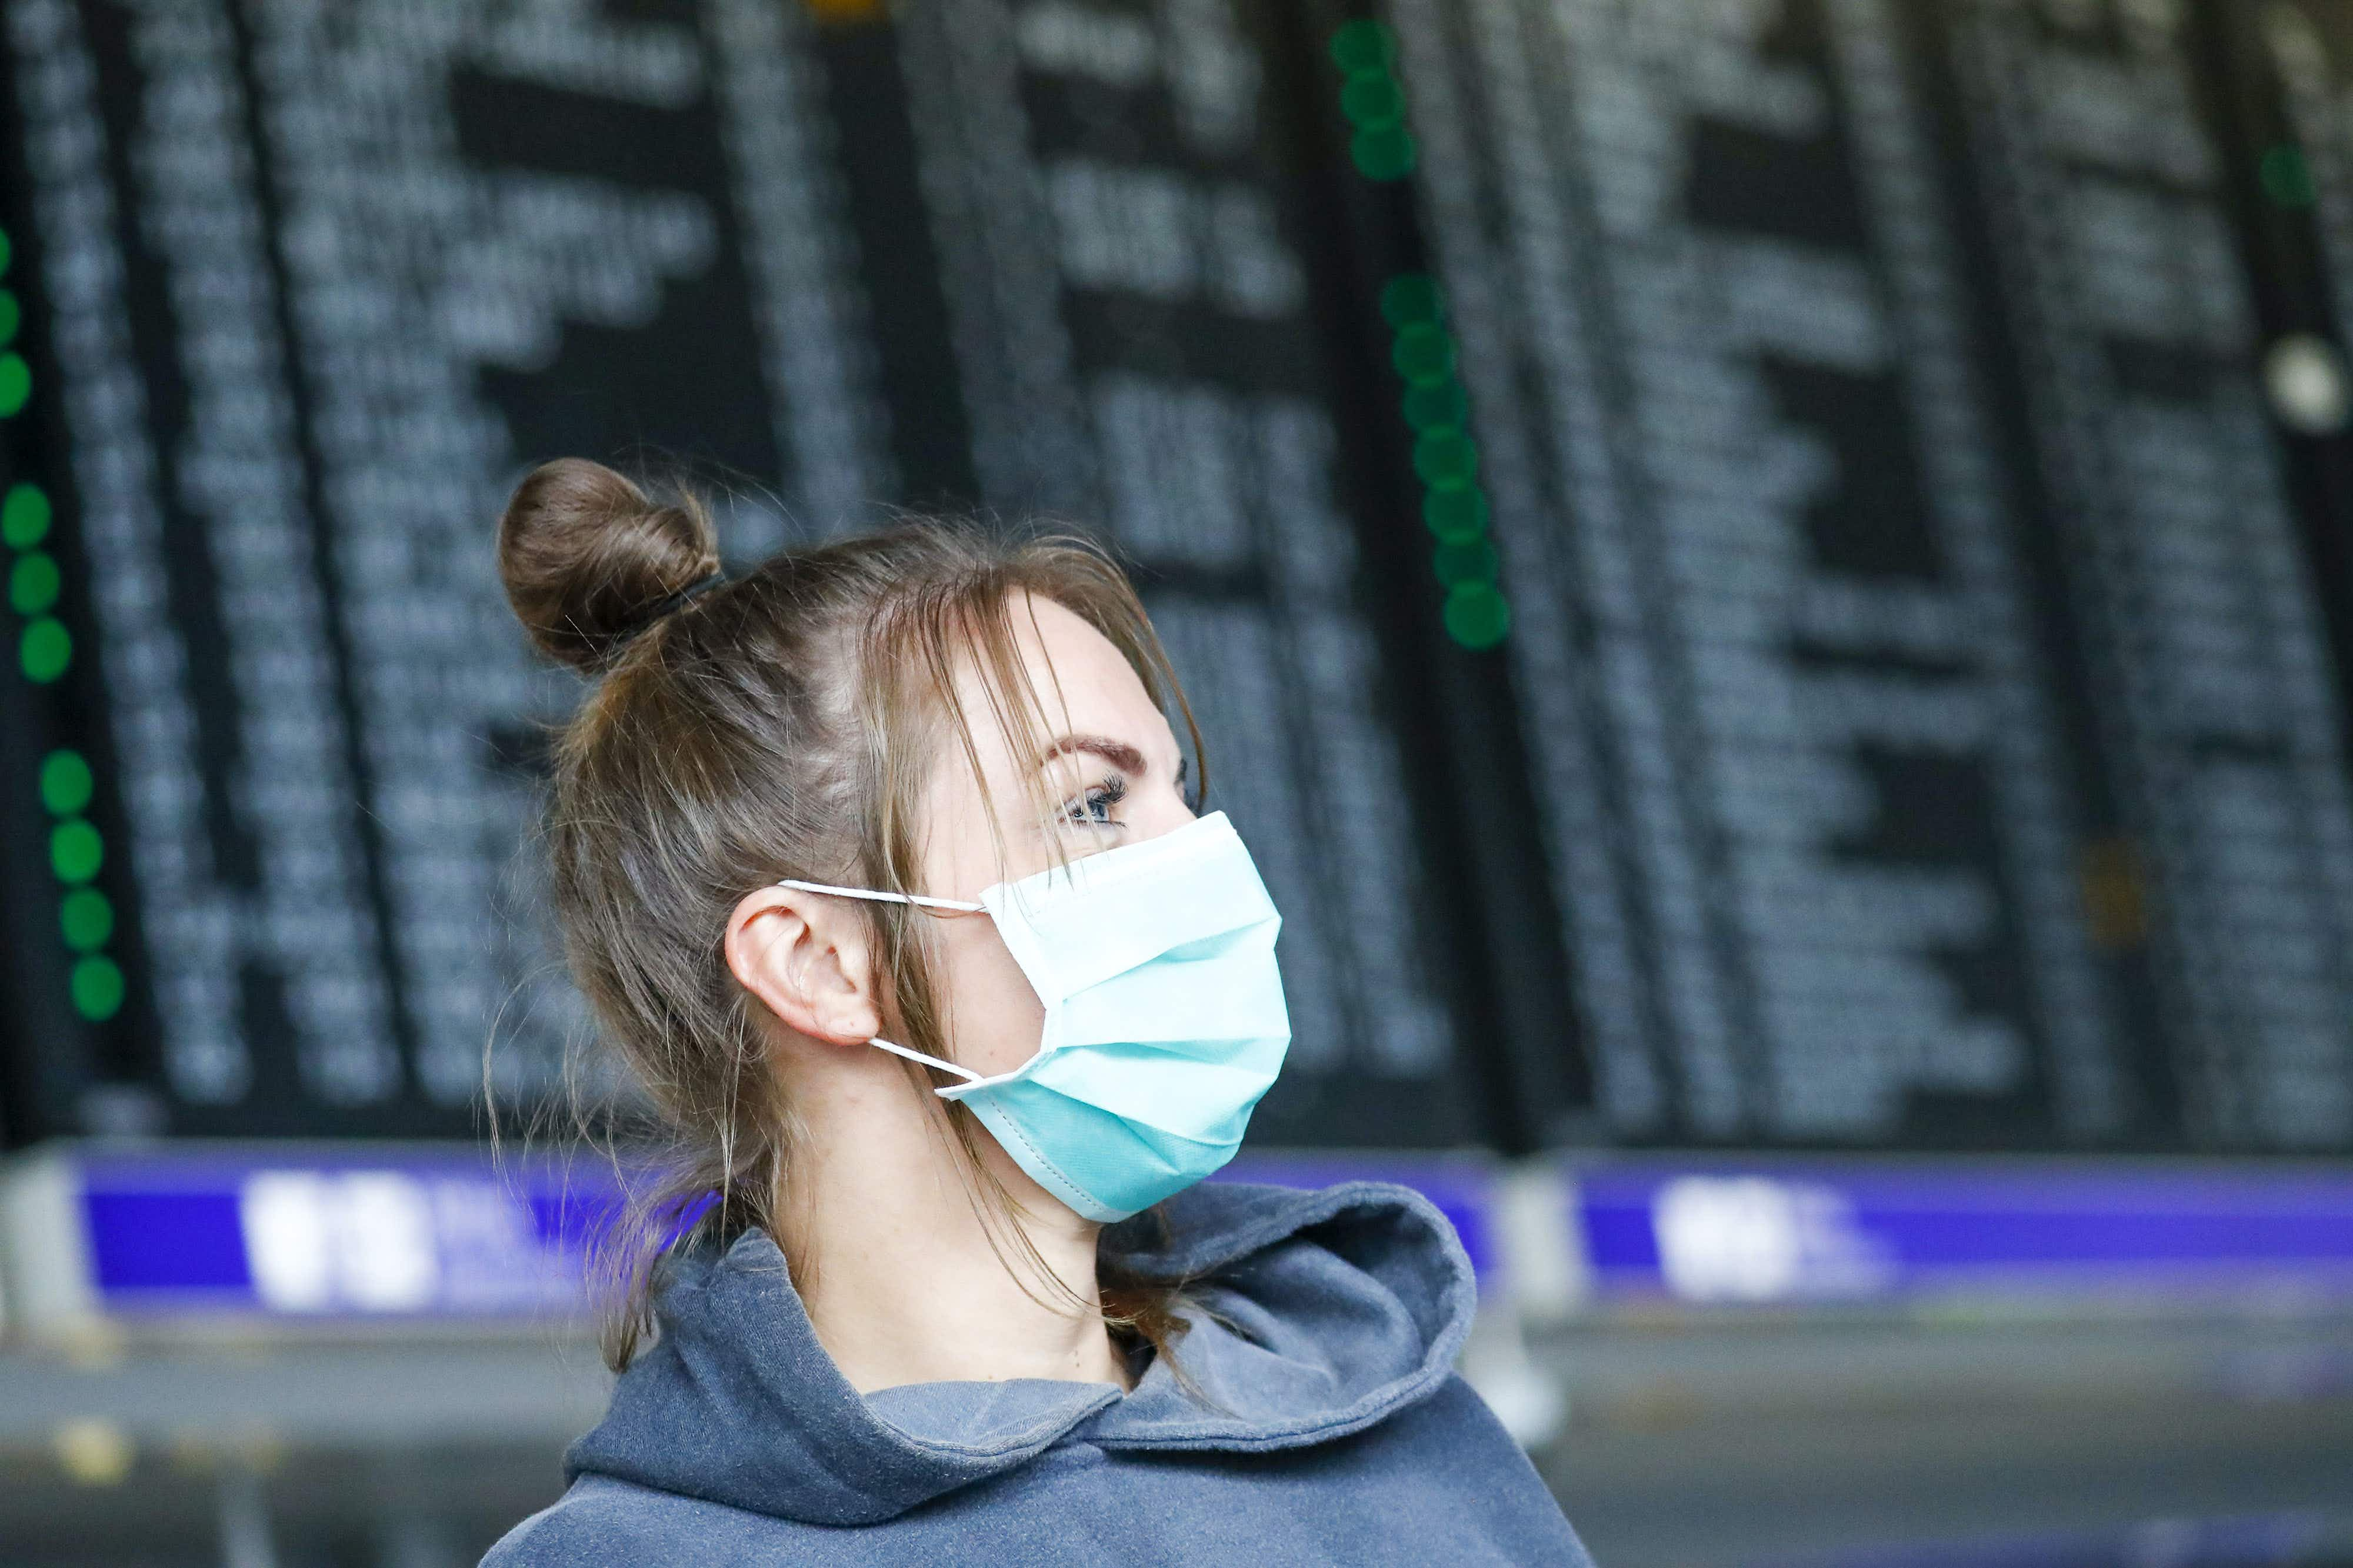 Will my airline give me a refund due to the coronavirus?